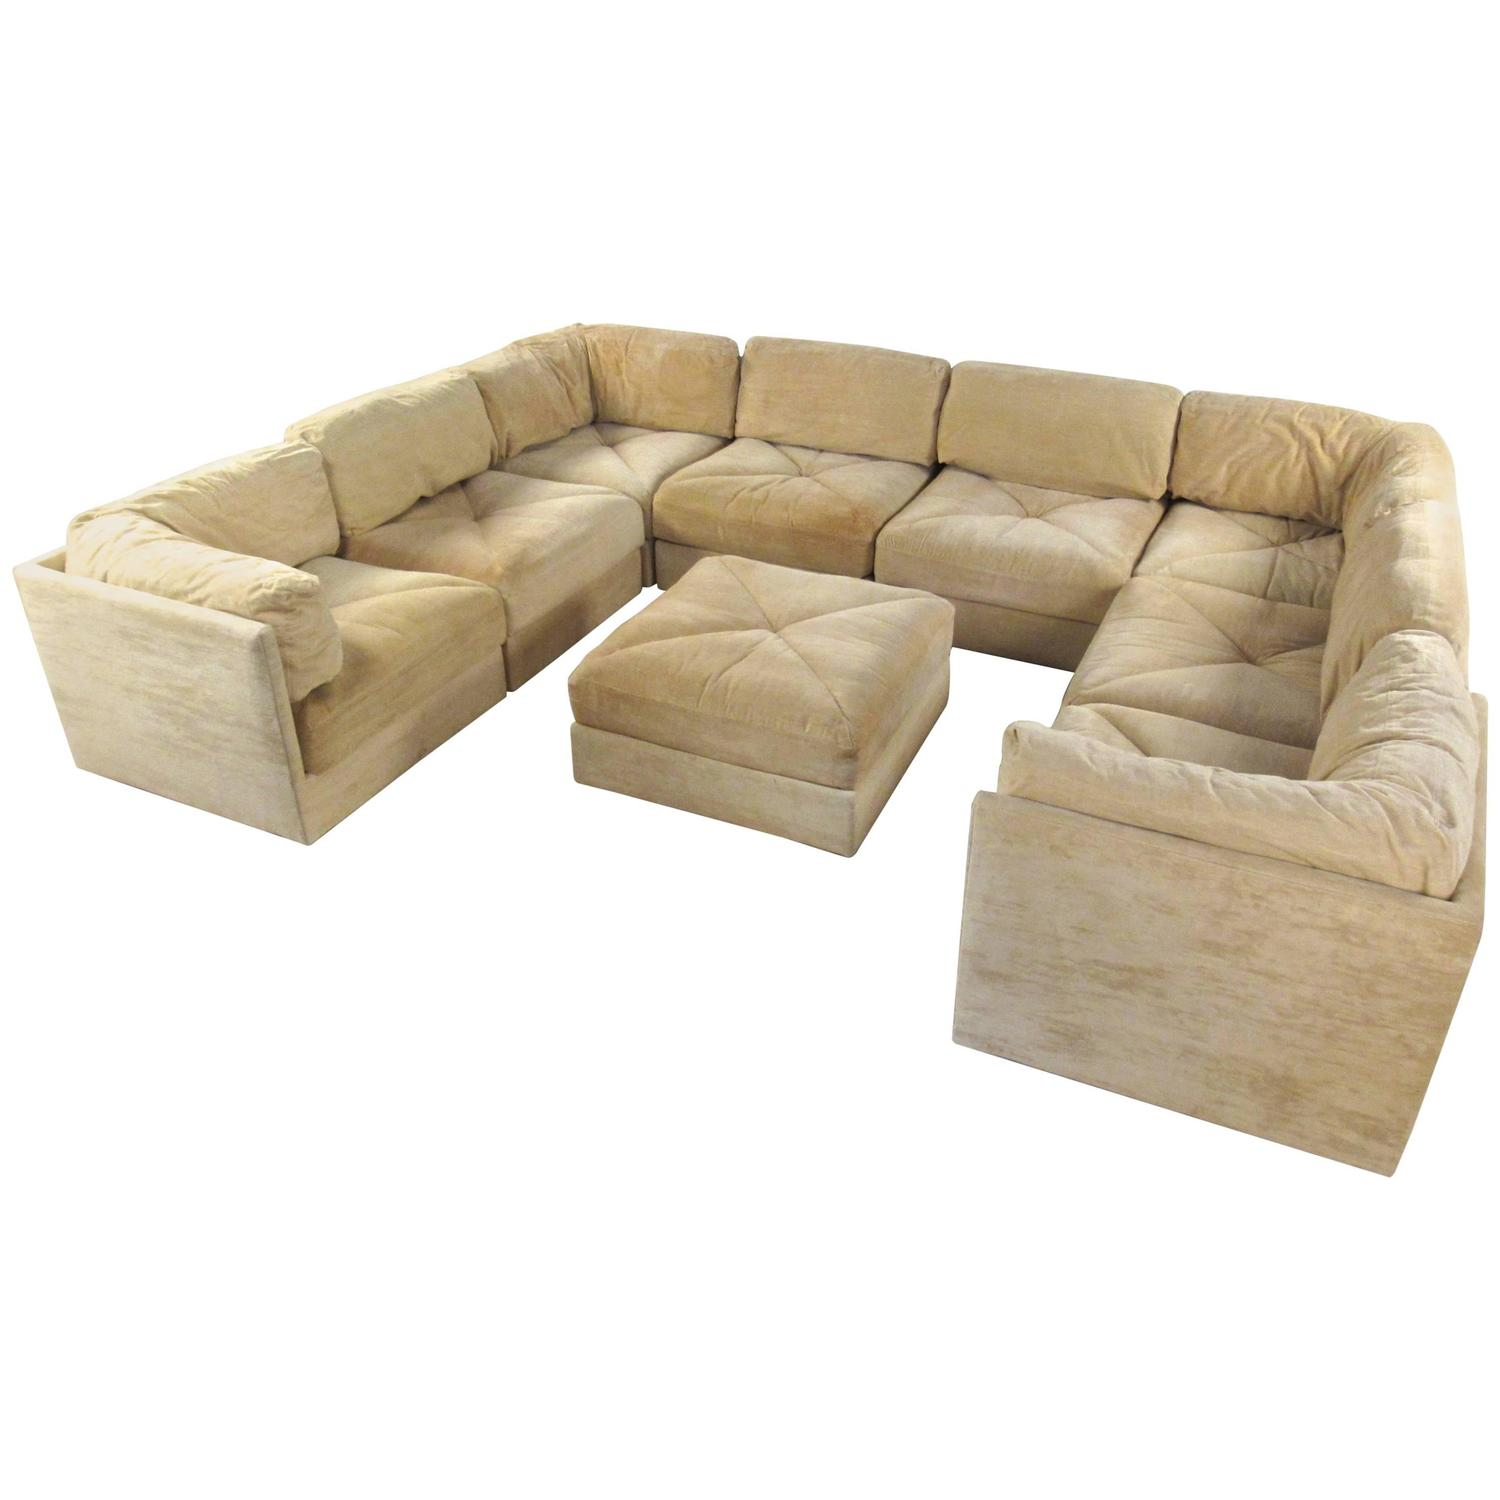 "American Modern ""Bounty Group"" Sectional Sofa Pace Collection by"